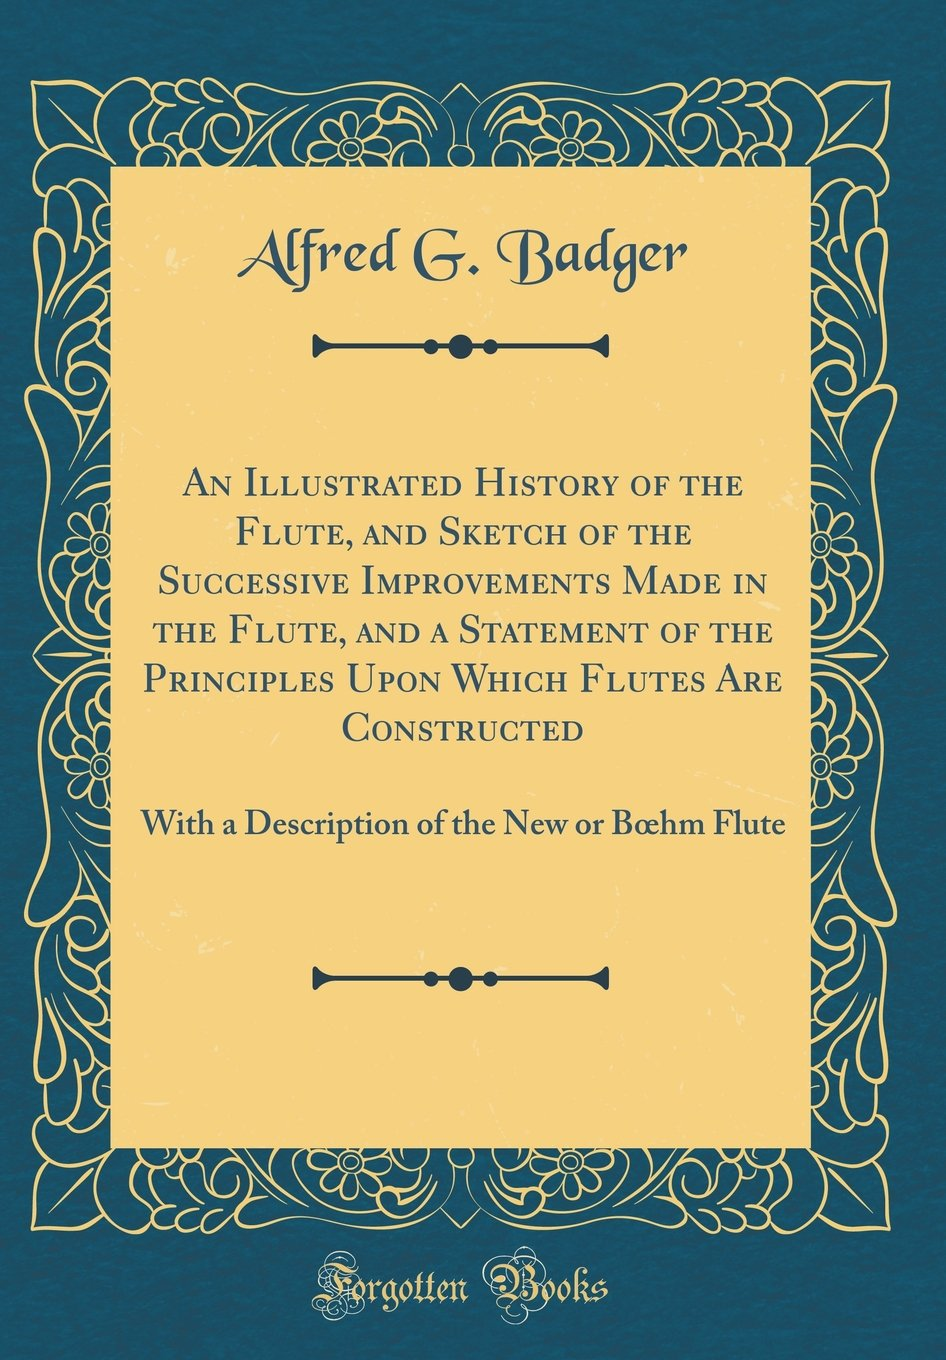 Read Online An Illustrated History of the Flute, and Sketch of the Successive Improvements Made in the Flute, and a Statement of the Principles Upon Which Flutes ... of the New or Boehm Flute (Classic Reprint) ebook